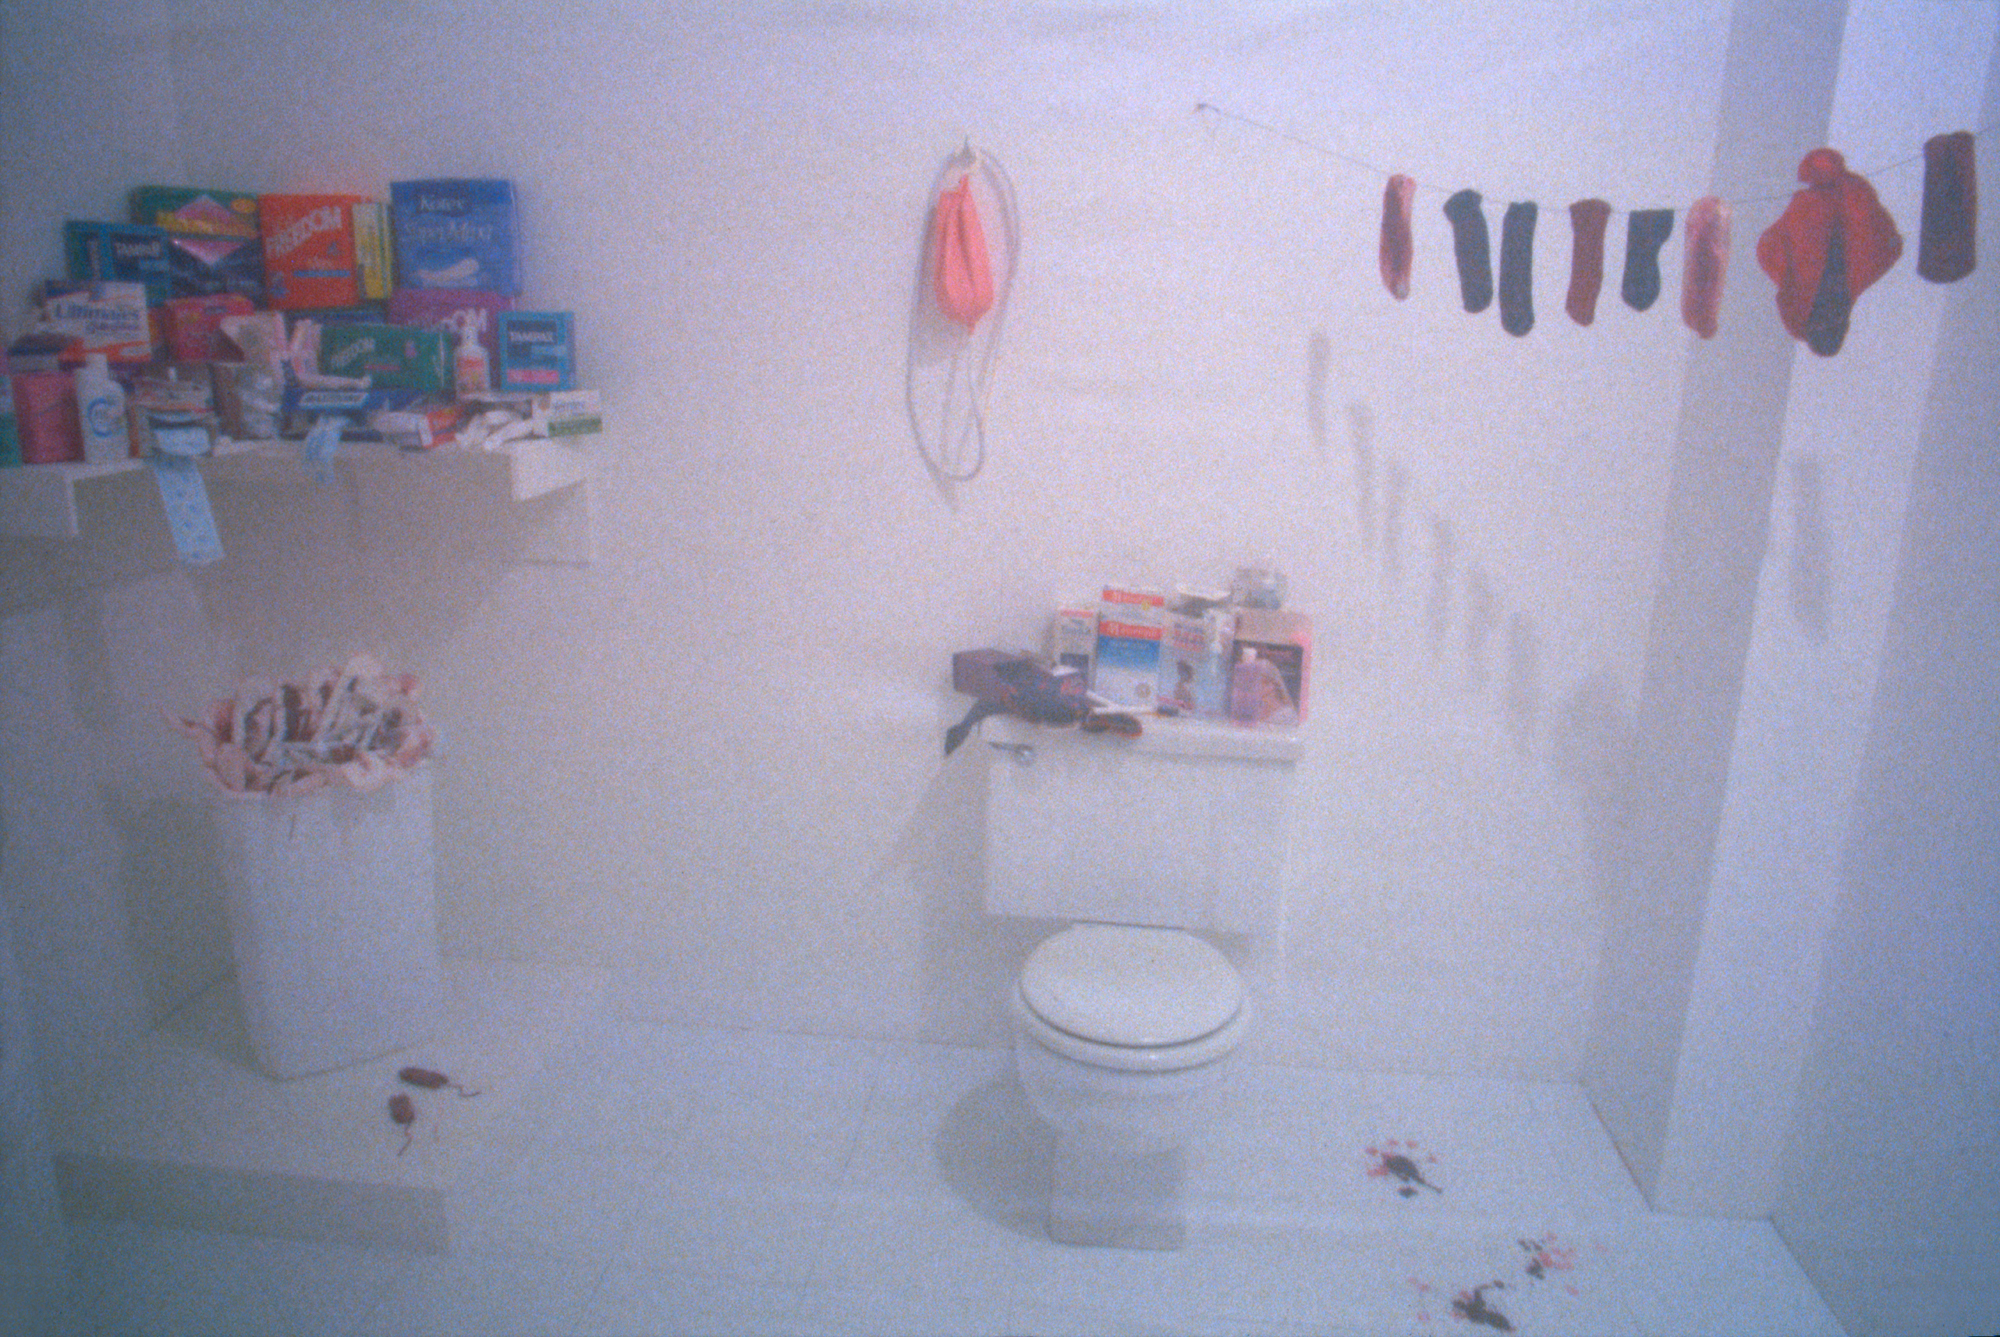 Judy Chicago  Menstruation Bathroom  1995  mixed media  reinstallation at  LAMOCA of 1972 Menstruation Bathroom from Womanhouse  1995    Judy Chicago. Selected work   Judy Chicago